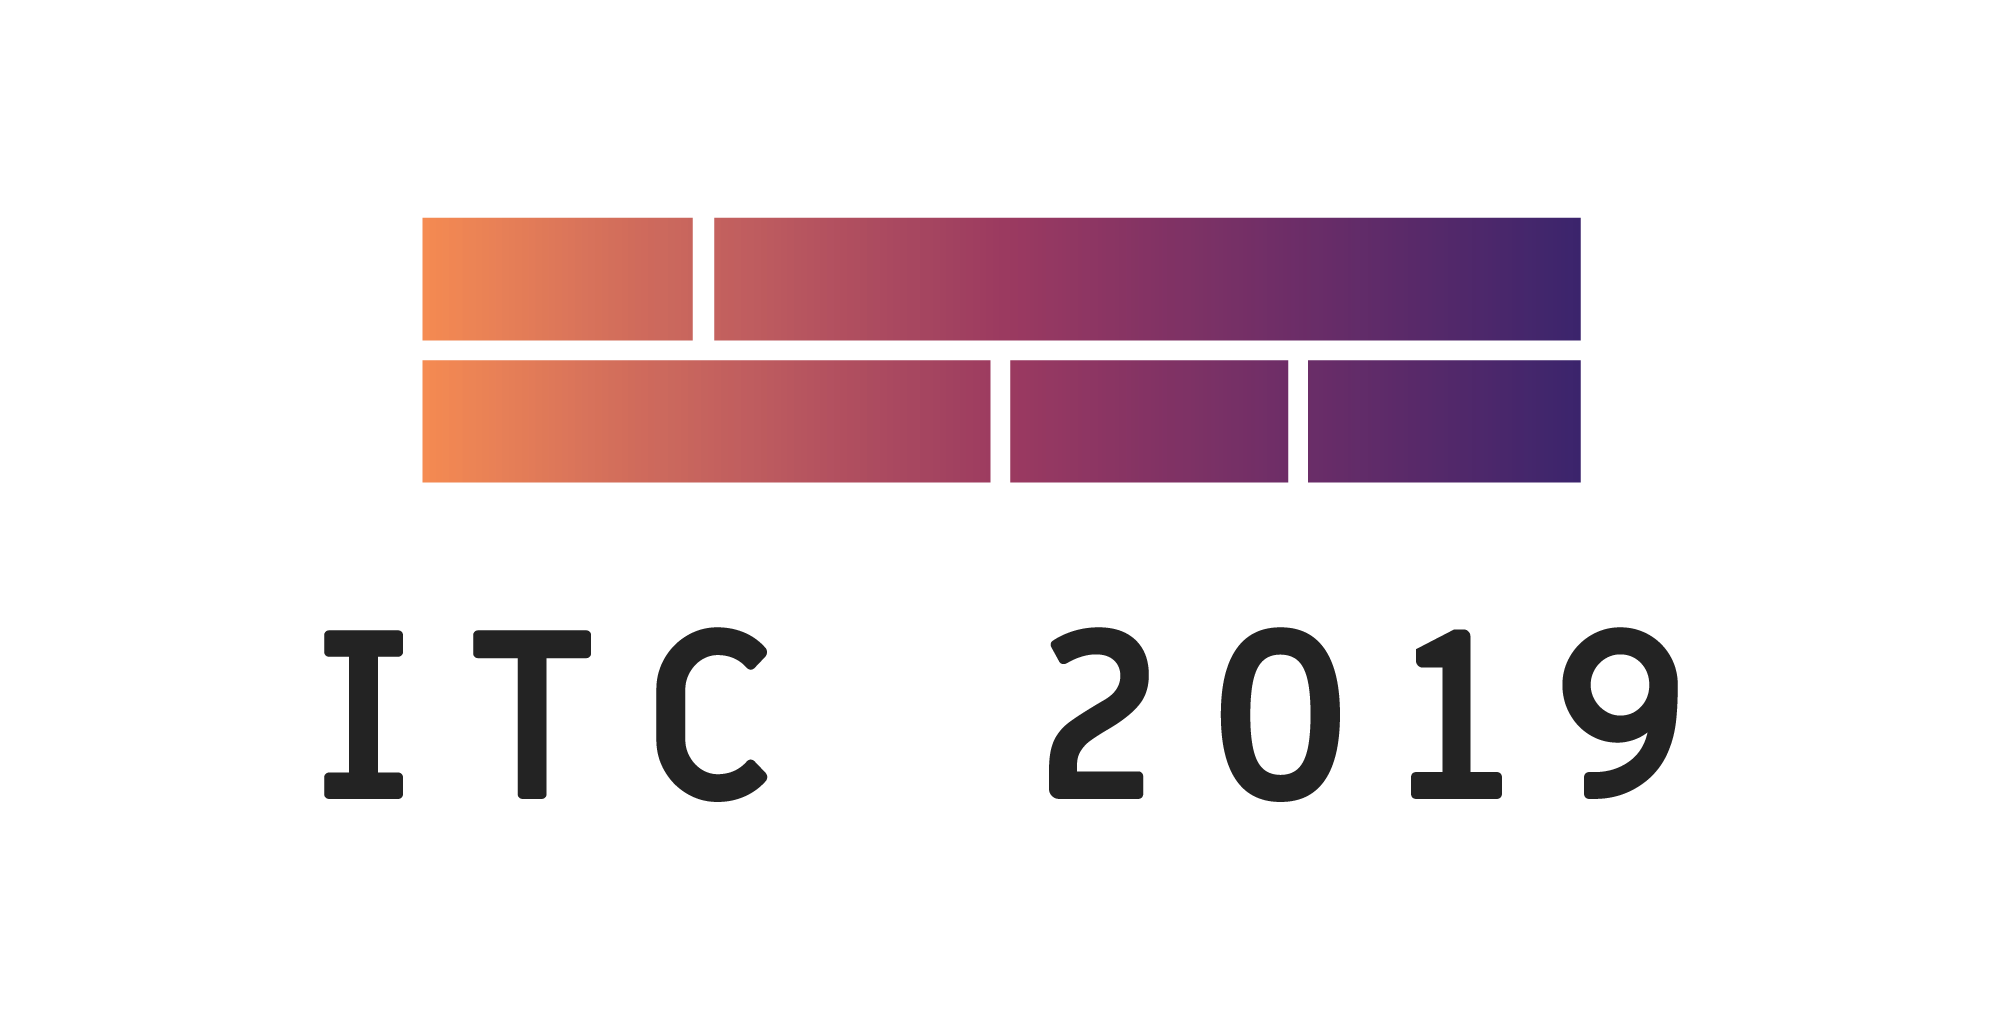 ITC 2019 already has 91 registrations from 34 countries. You can still register.